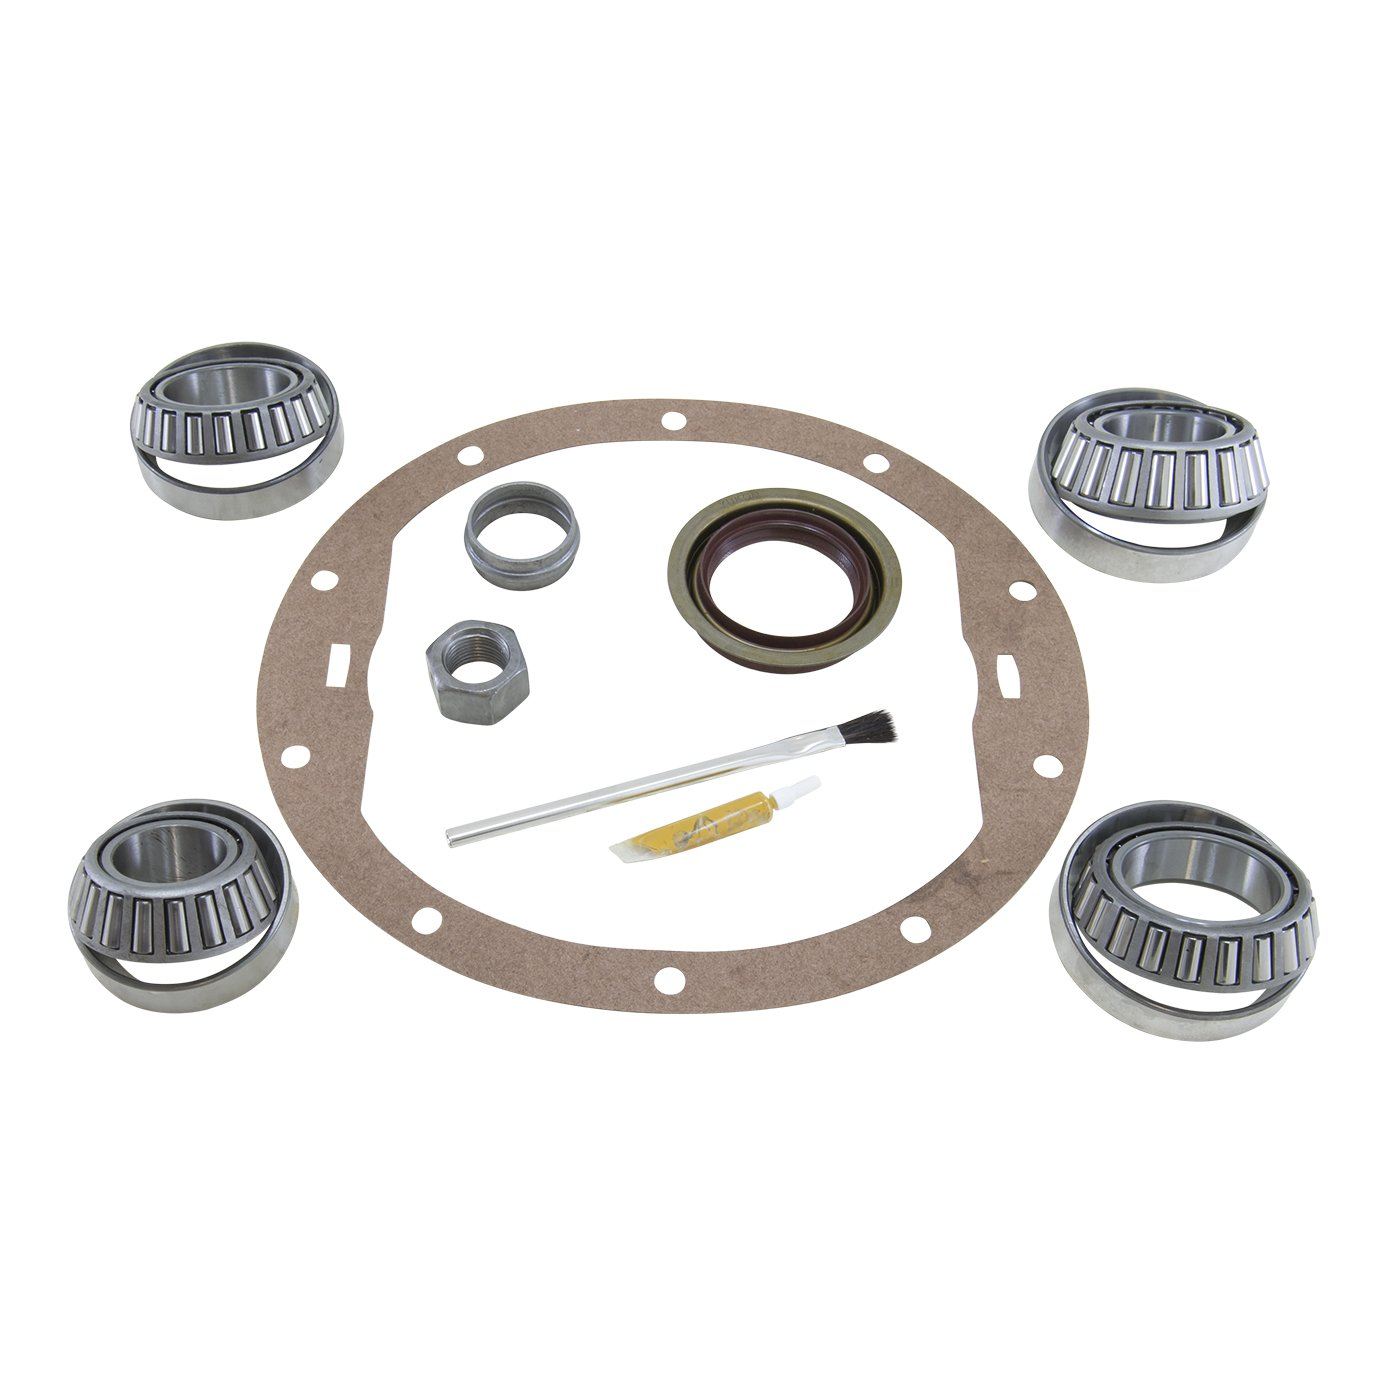 USA Standard Gear (ZBKGM7.5-B) Bearing Kit for GM 7.5''/7.625'' Rear Differential